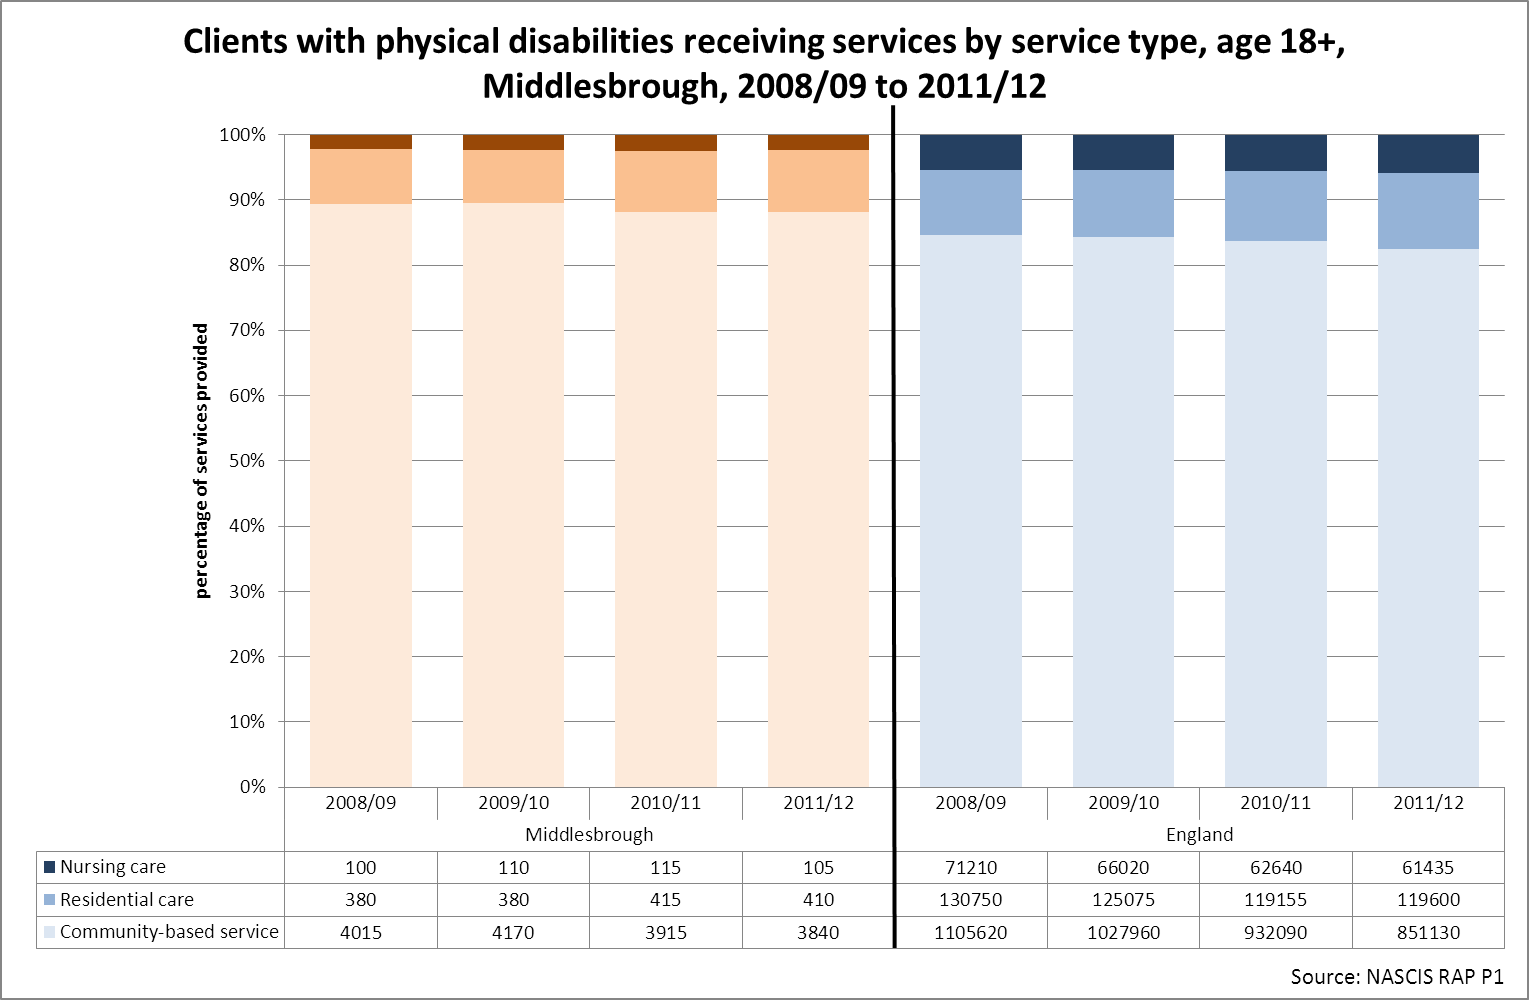 Middlesbrough adult physical disabilities by service type